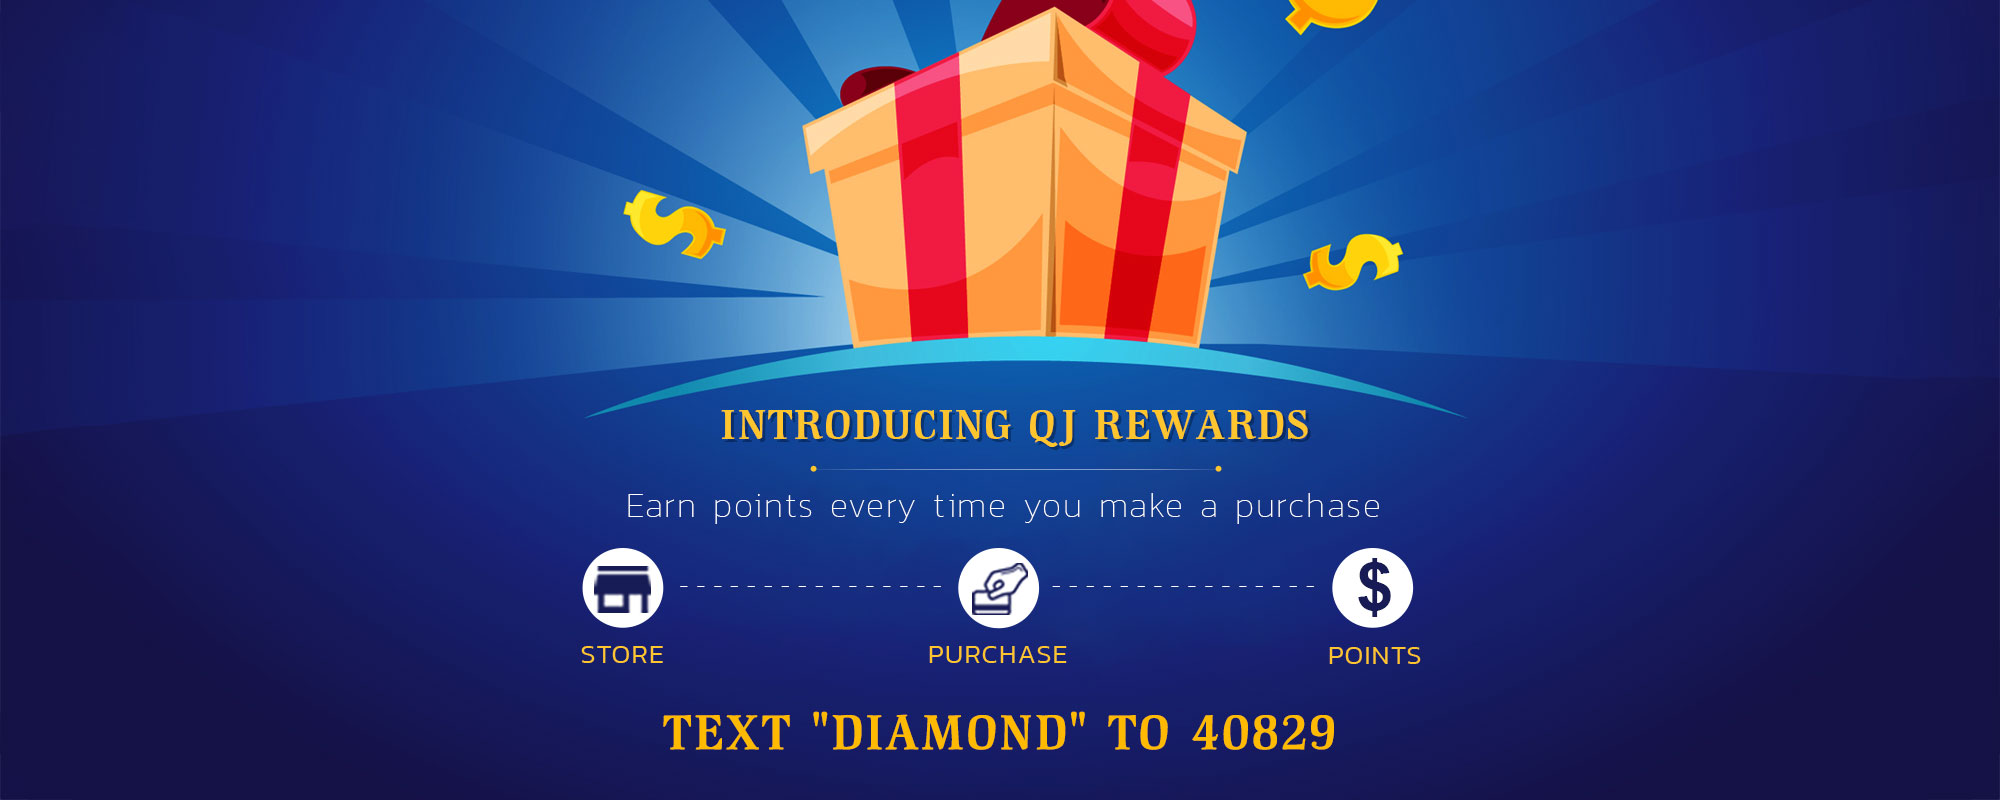 Make A Purchase And Earn Points At Quality Jewelers